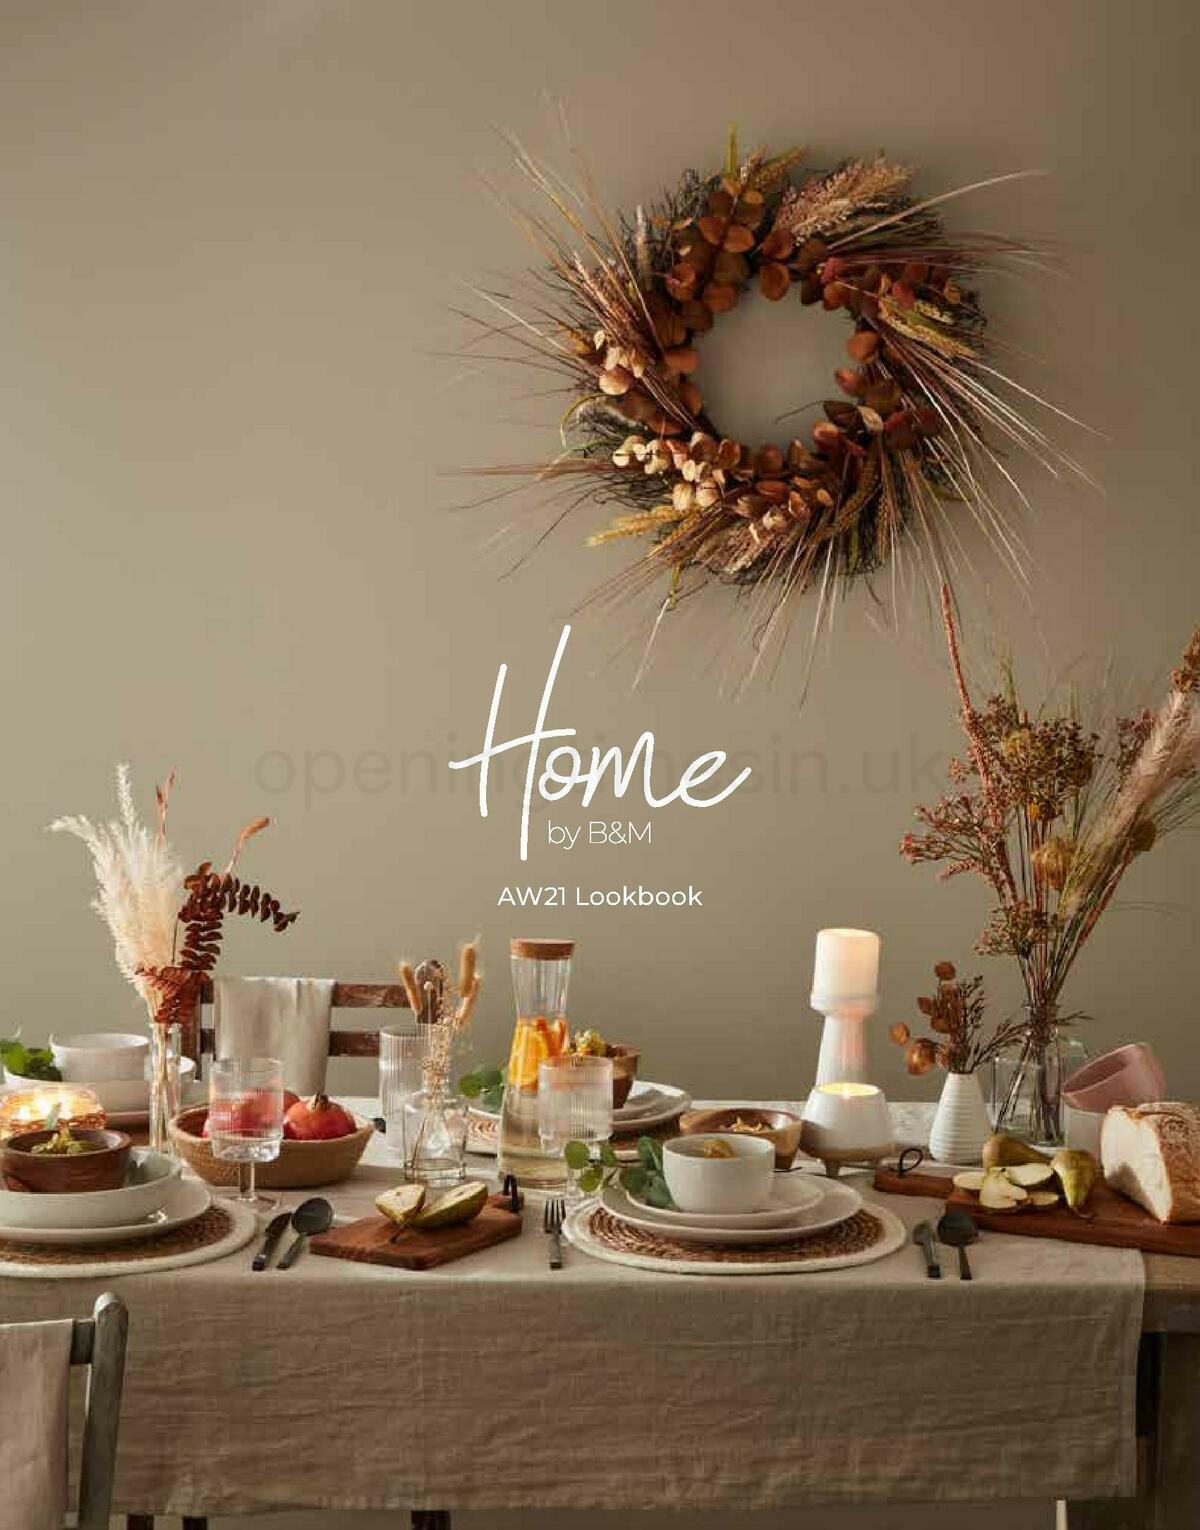 B&M Home Lookbook Offers from September 12